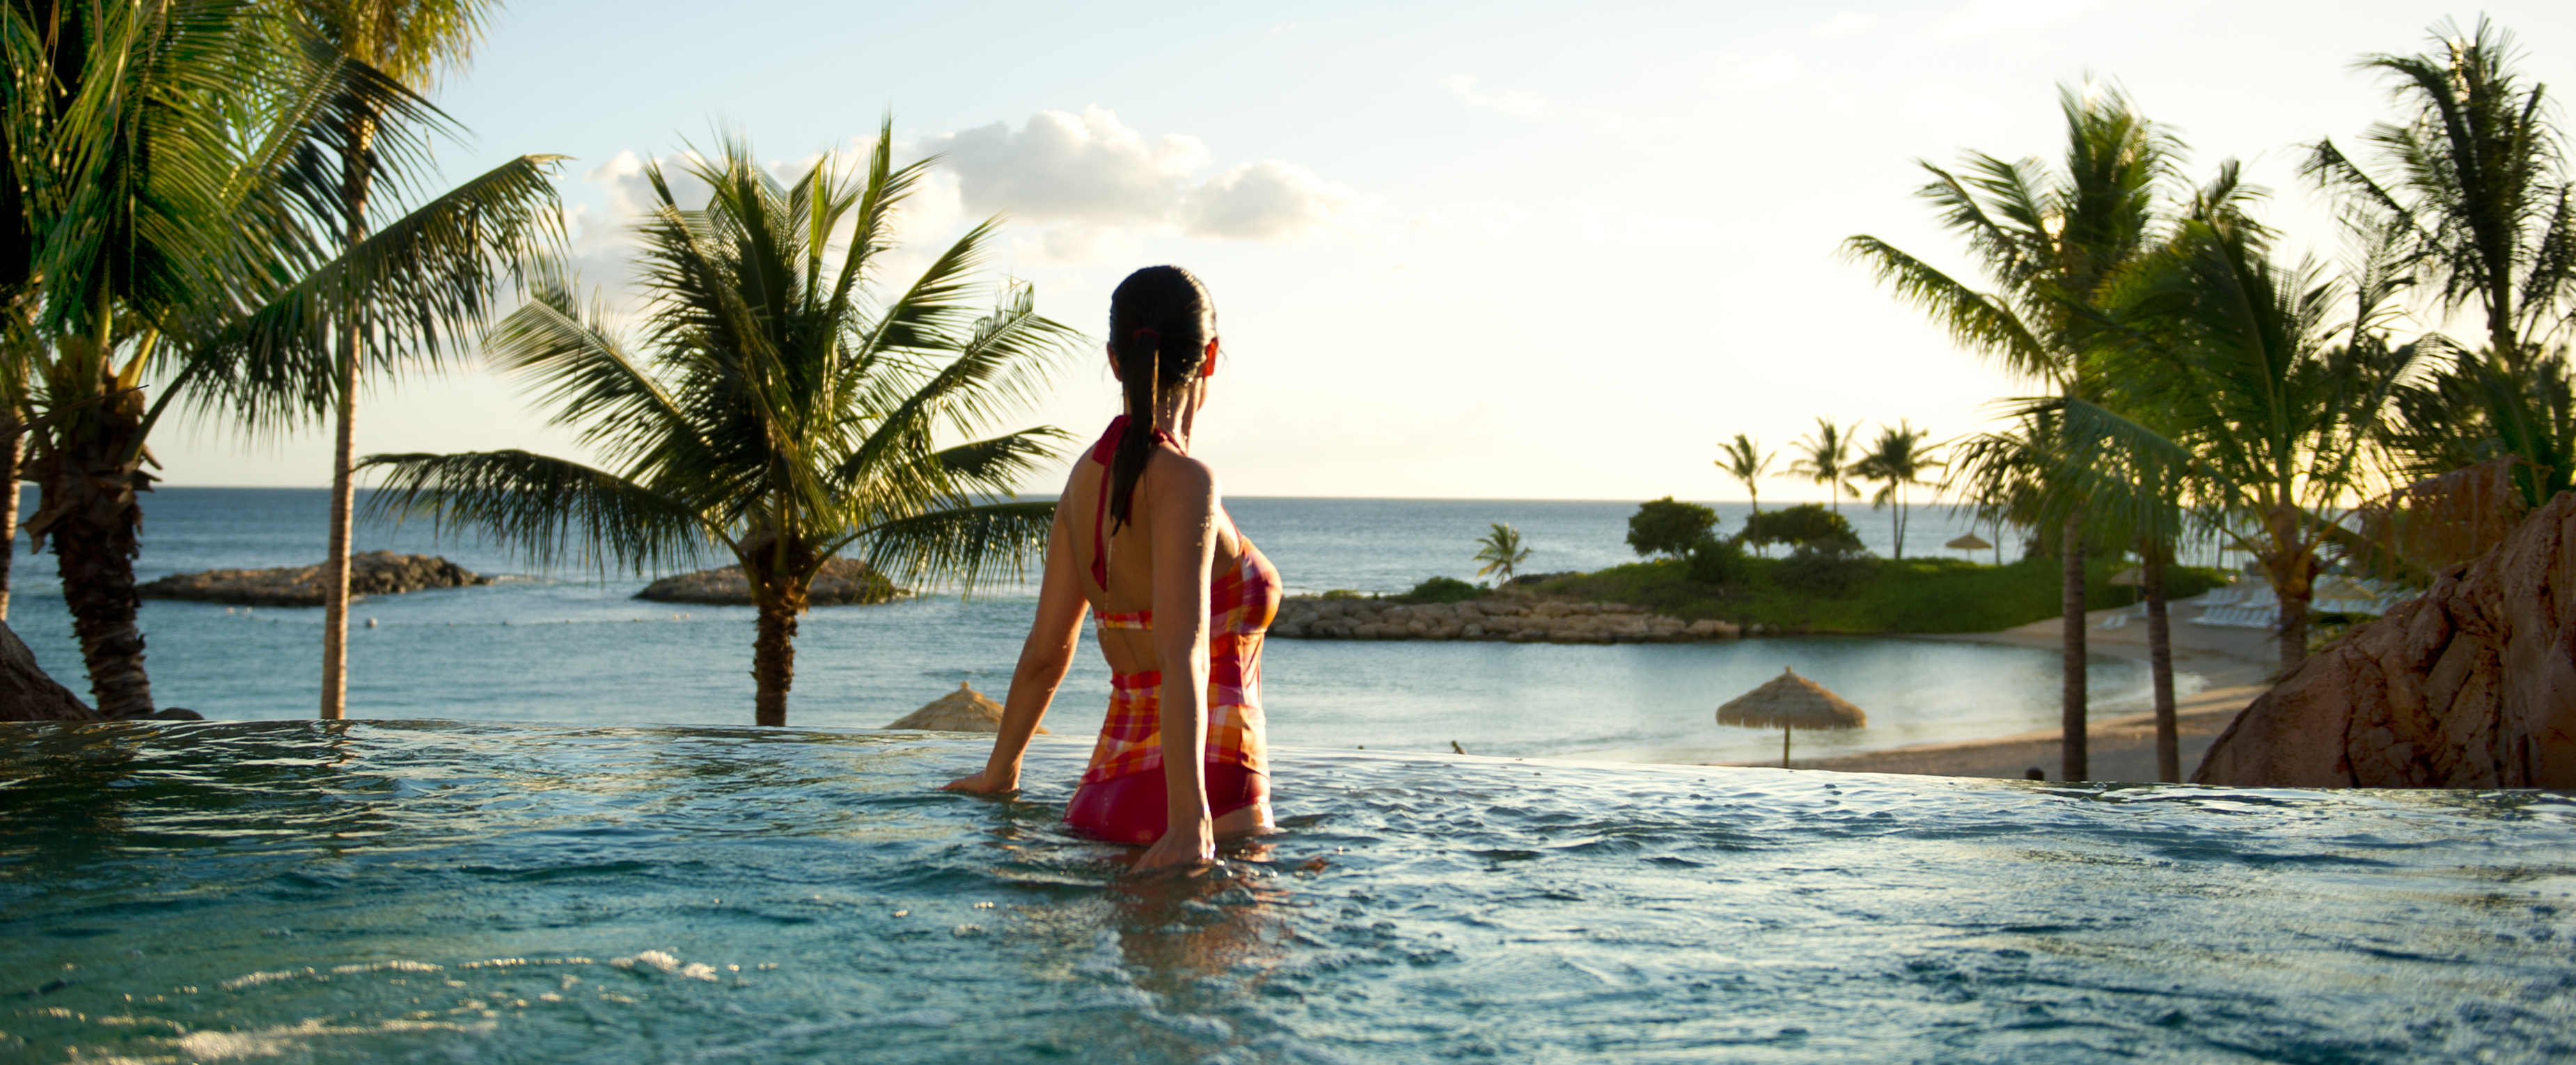 Outdoor Whirlpool Spas | Aulani Hawaii Resort & Spa